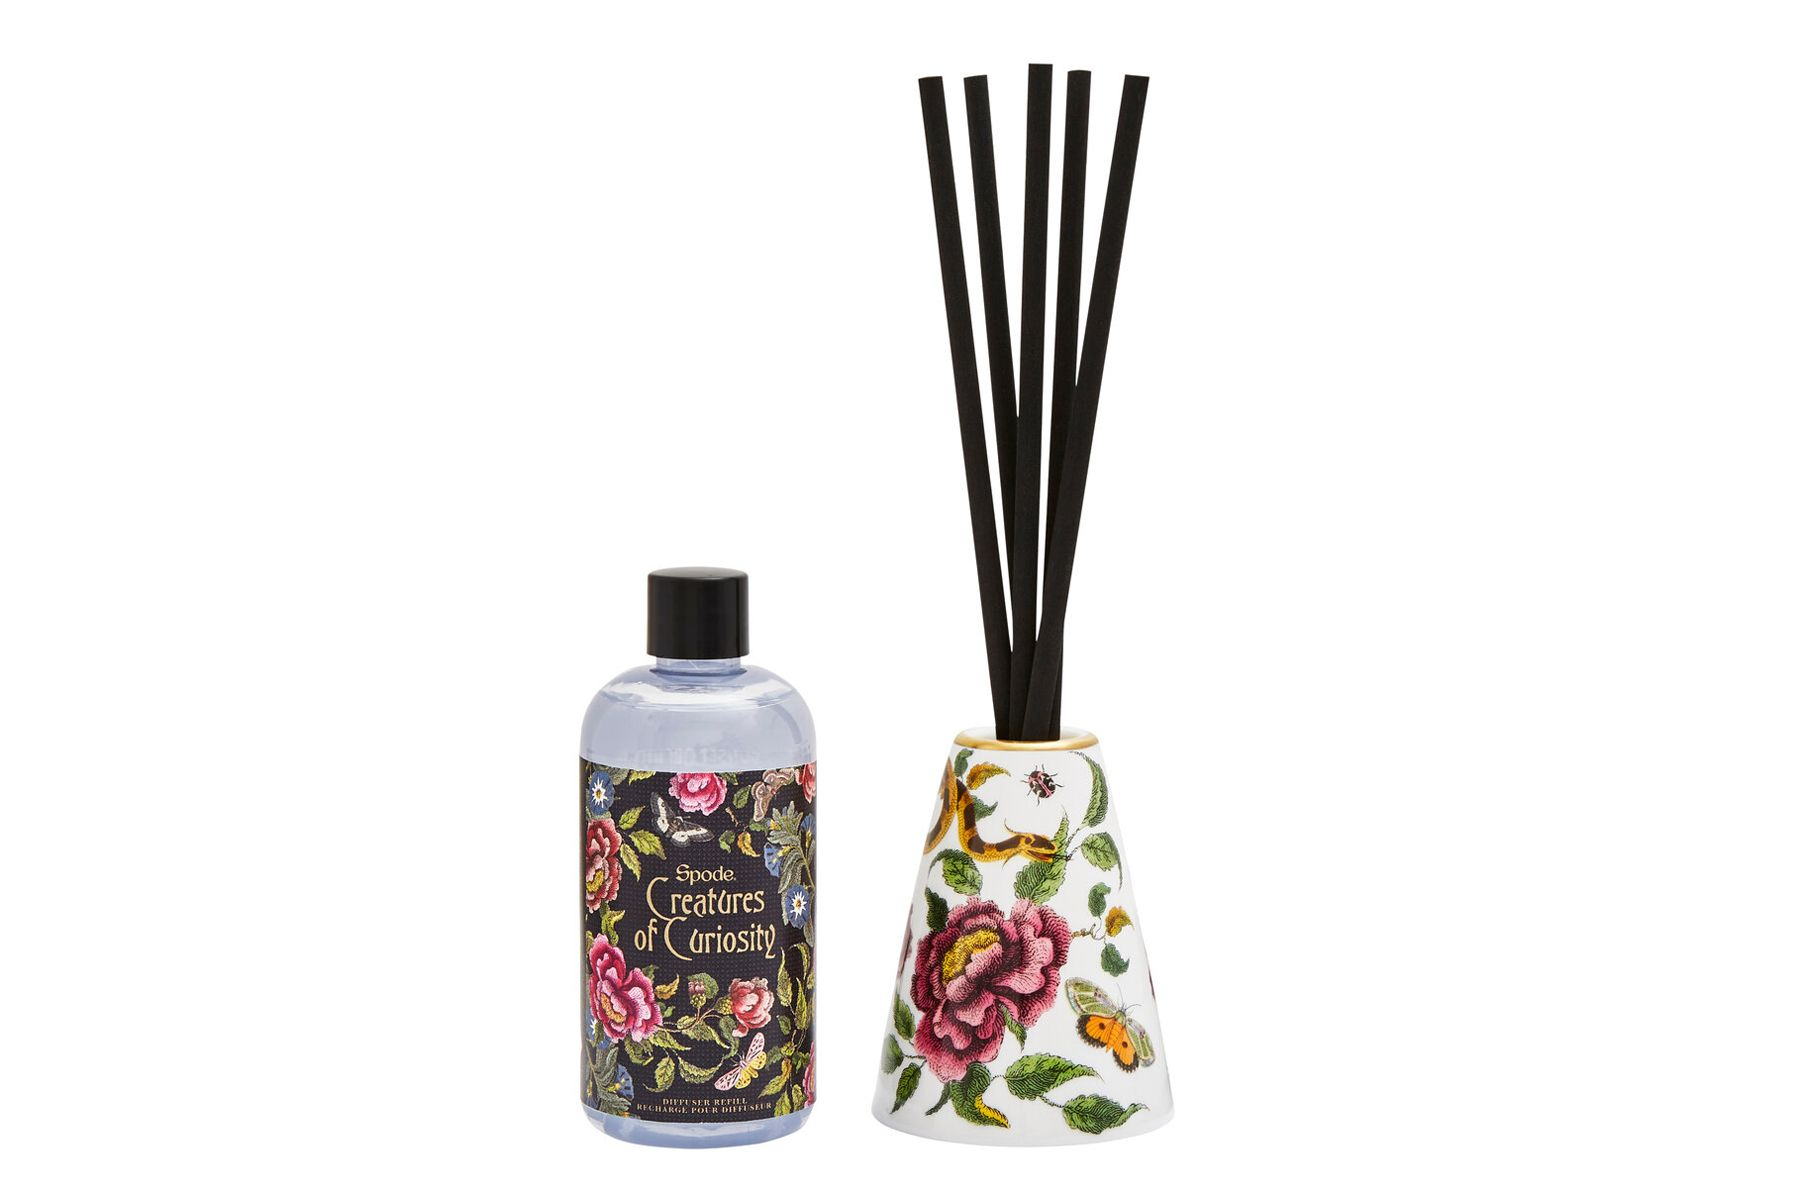 Spode Creatures of Curiosity Diffuser Set Snake thumb 1